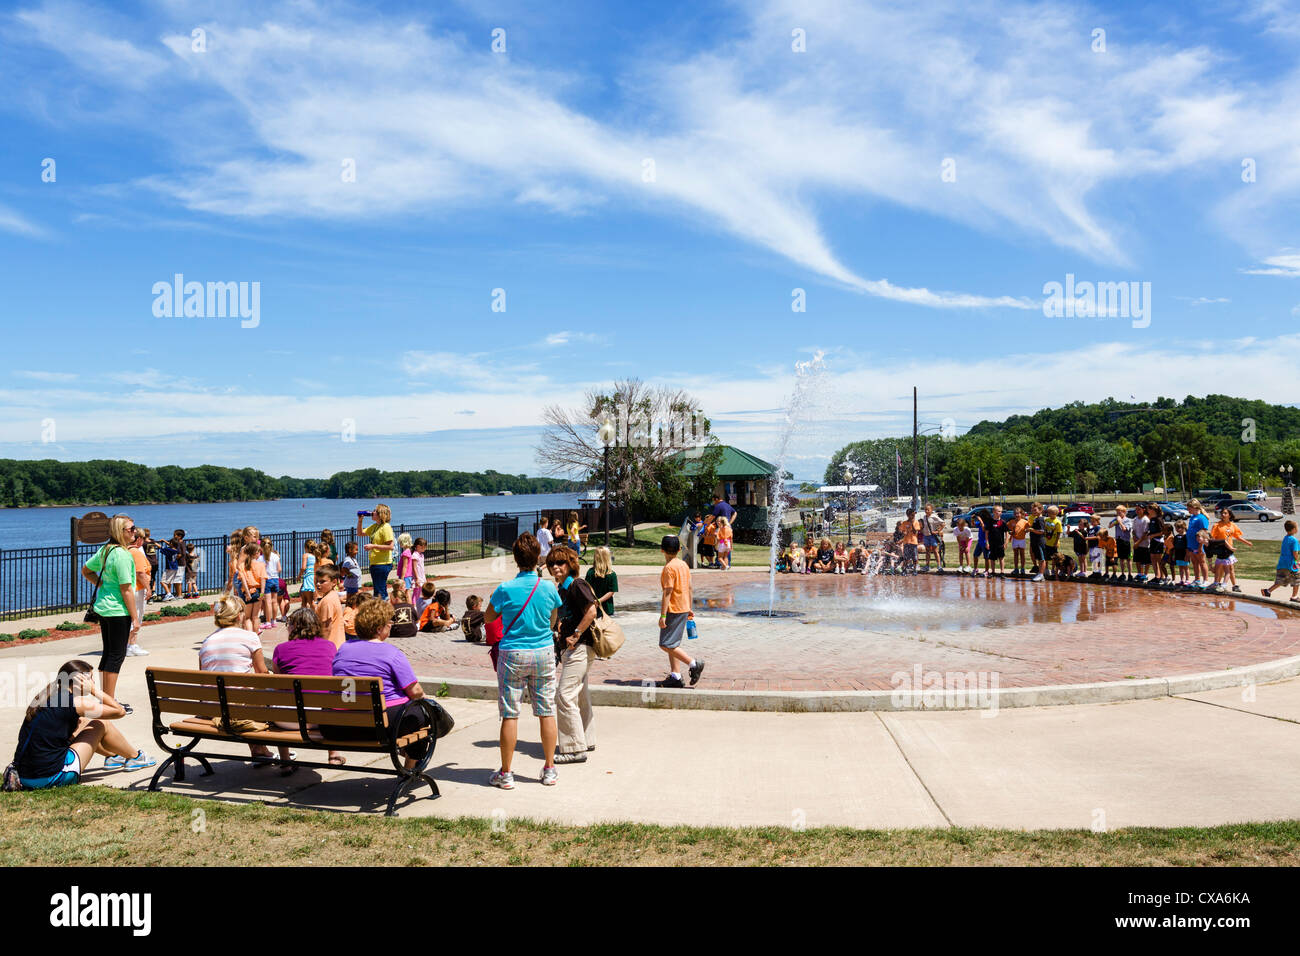 School outing on the banks of the Mississippi River in Hannibal, Missouri, home town of Mark Twain, USA Stock Photo